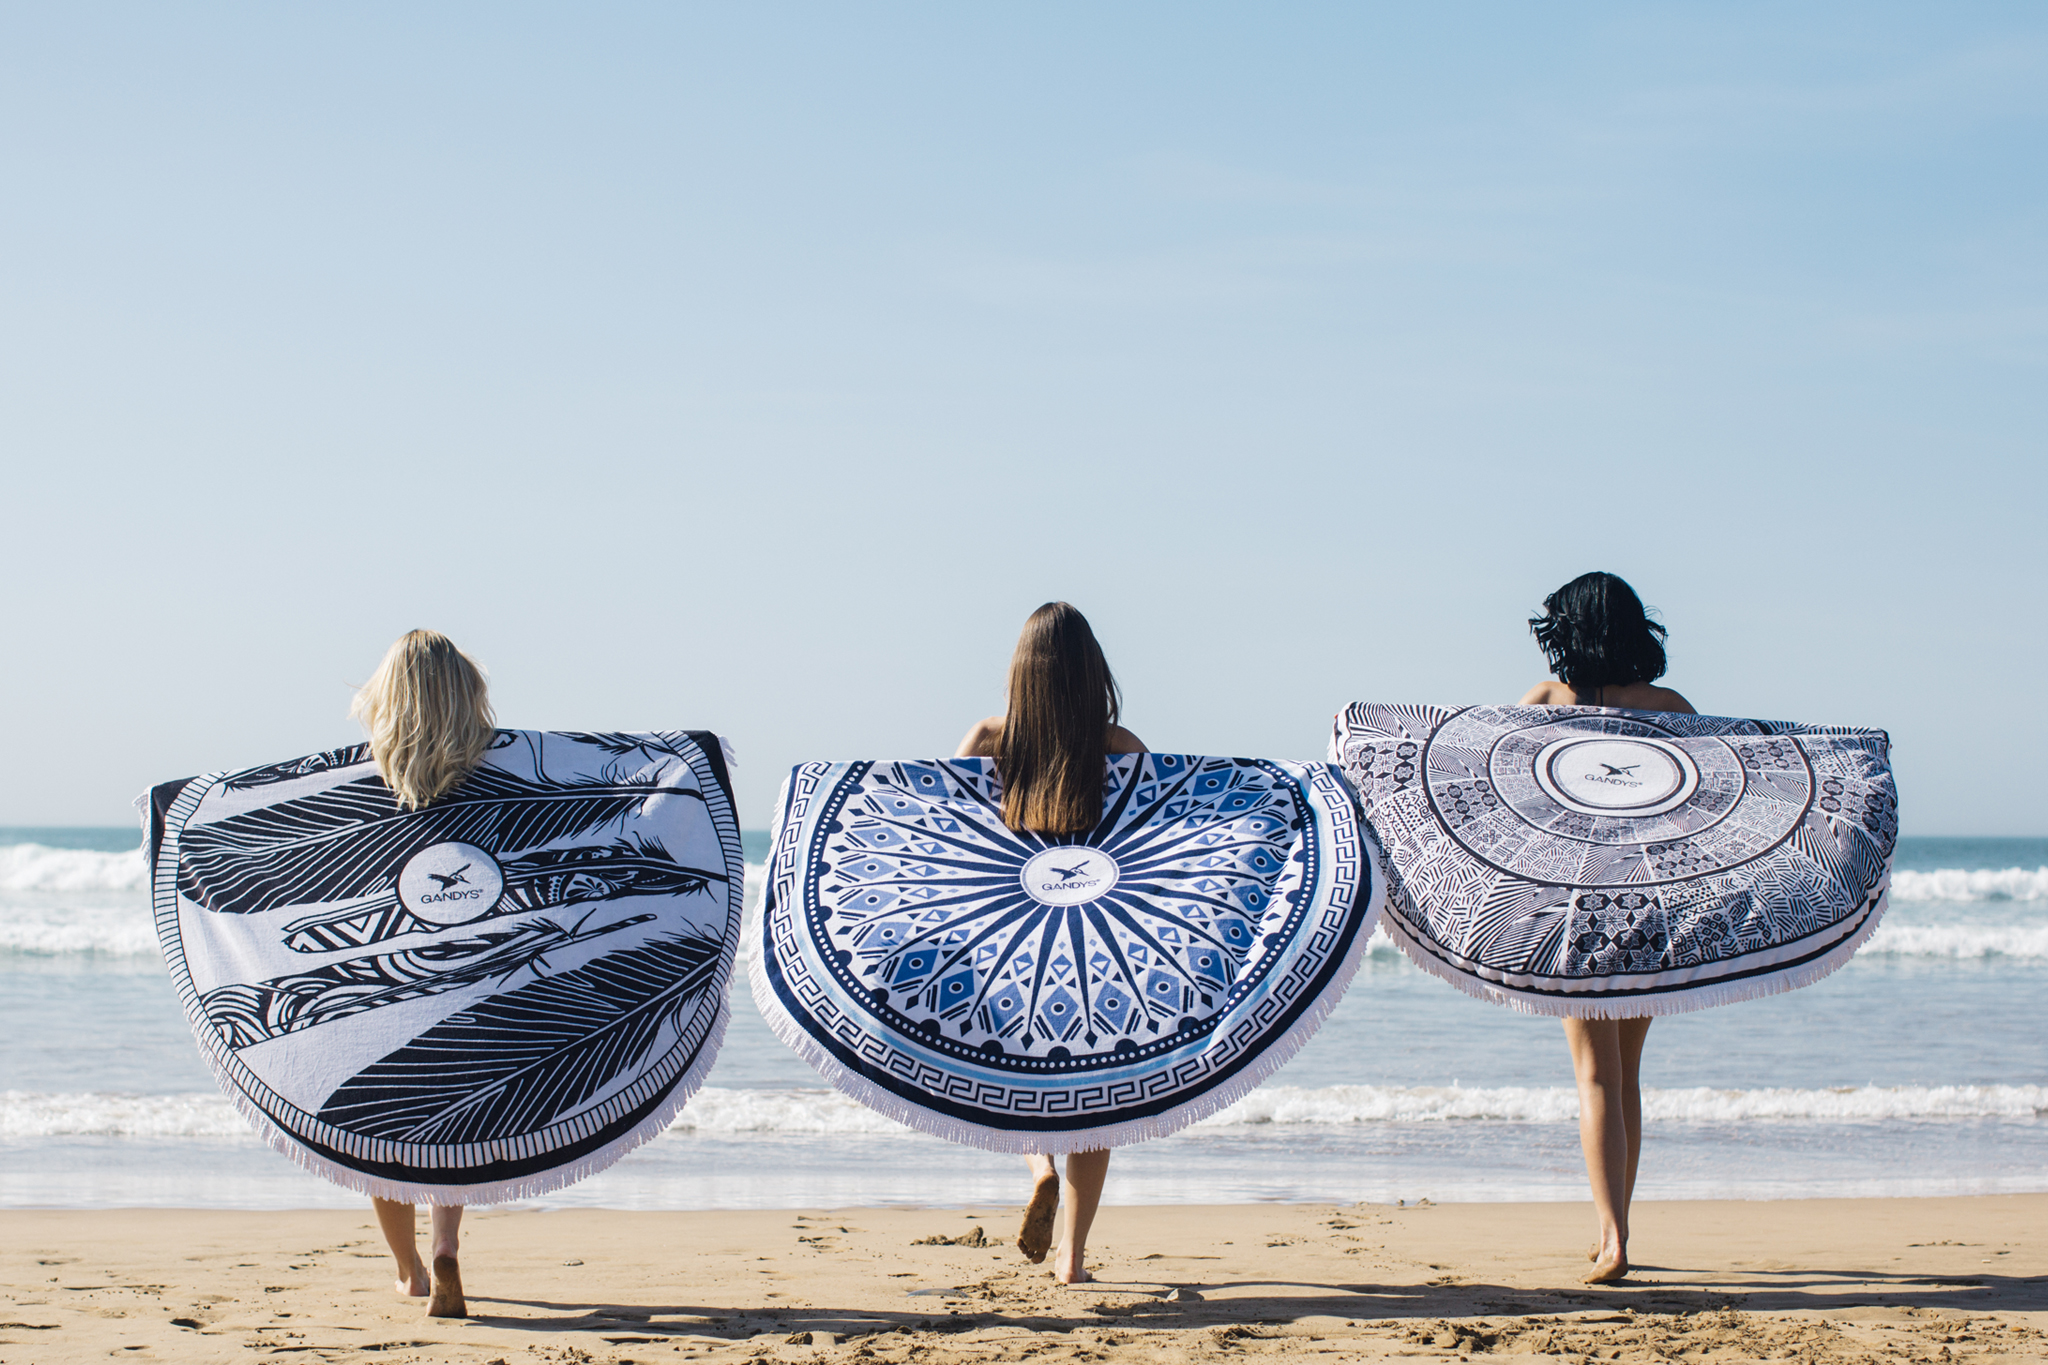 Gandy's Round Towels Sustainable Products